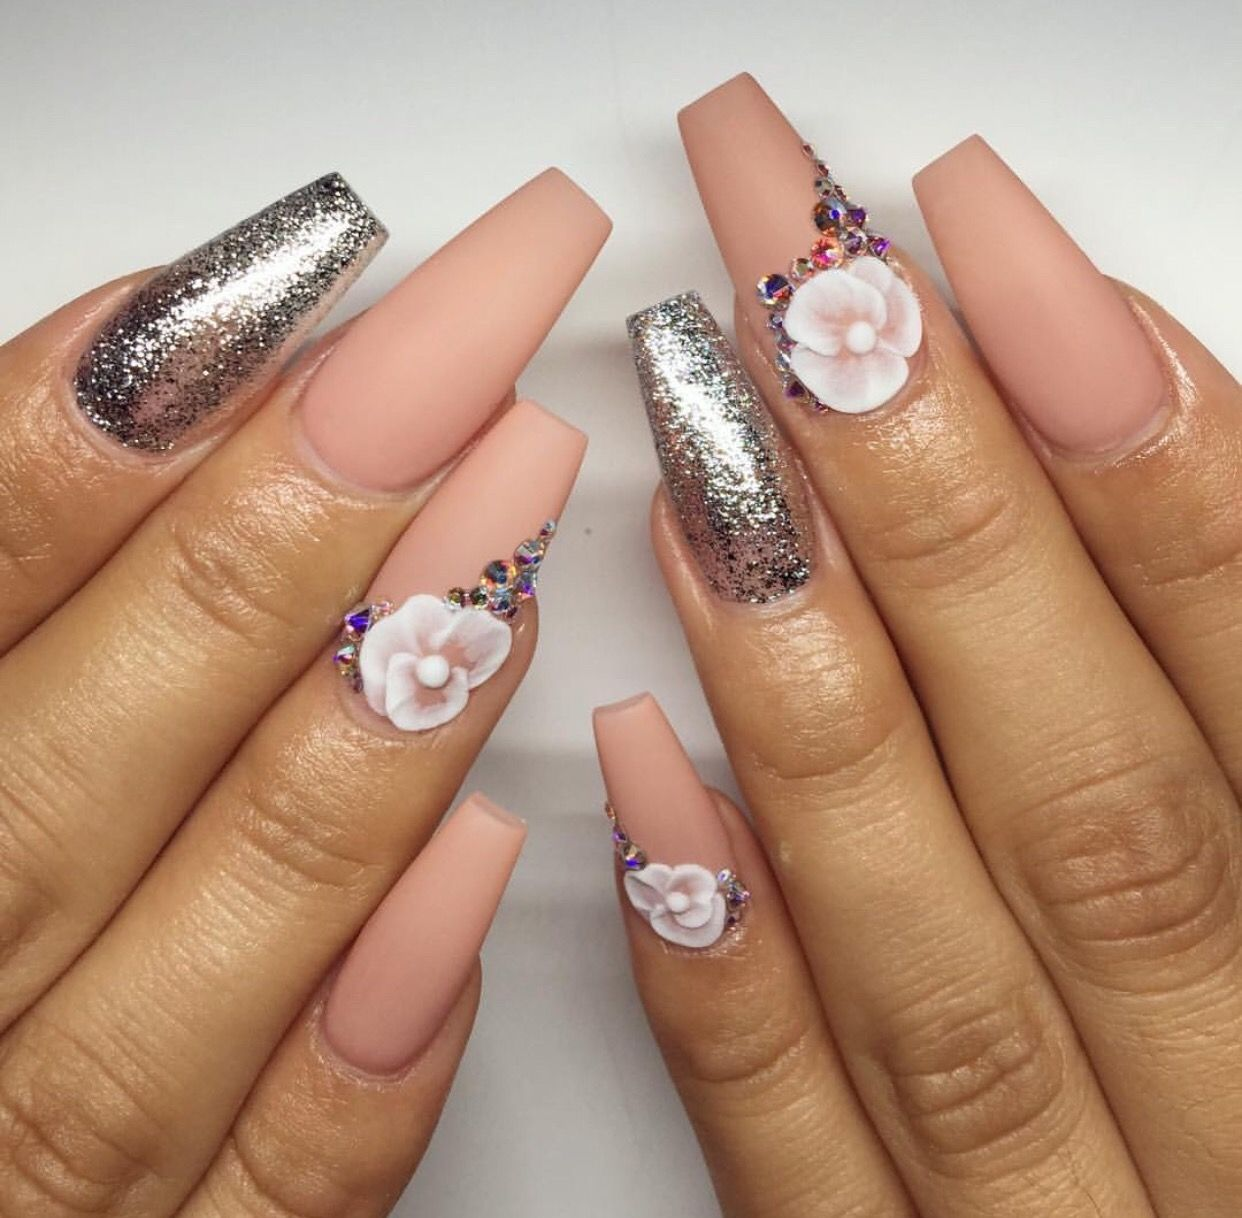 Pin by Grey on Uñas Coffin | Pinterest | Coffin nails, Nude nails ...